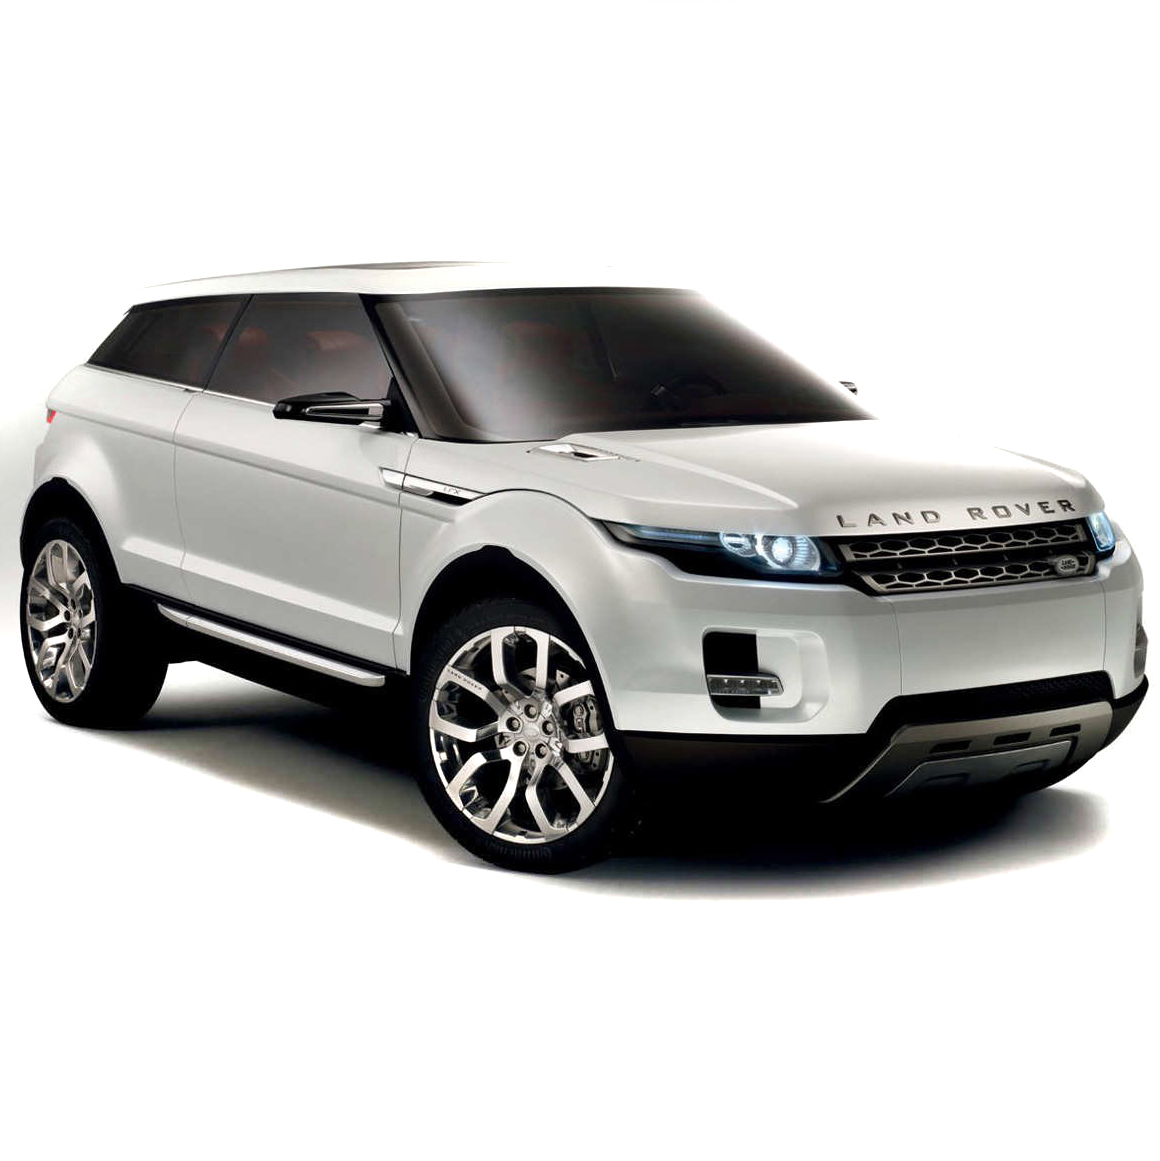 Land Rover Range Rover Evoque (All Models)